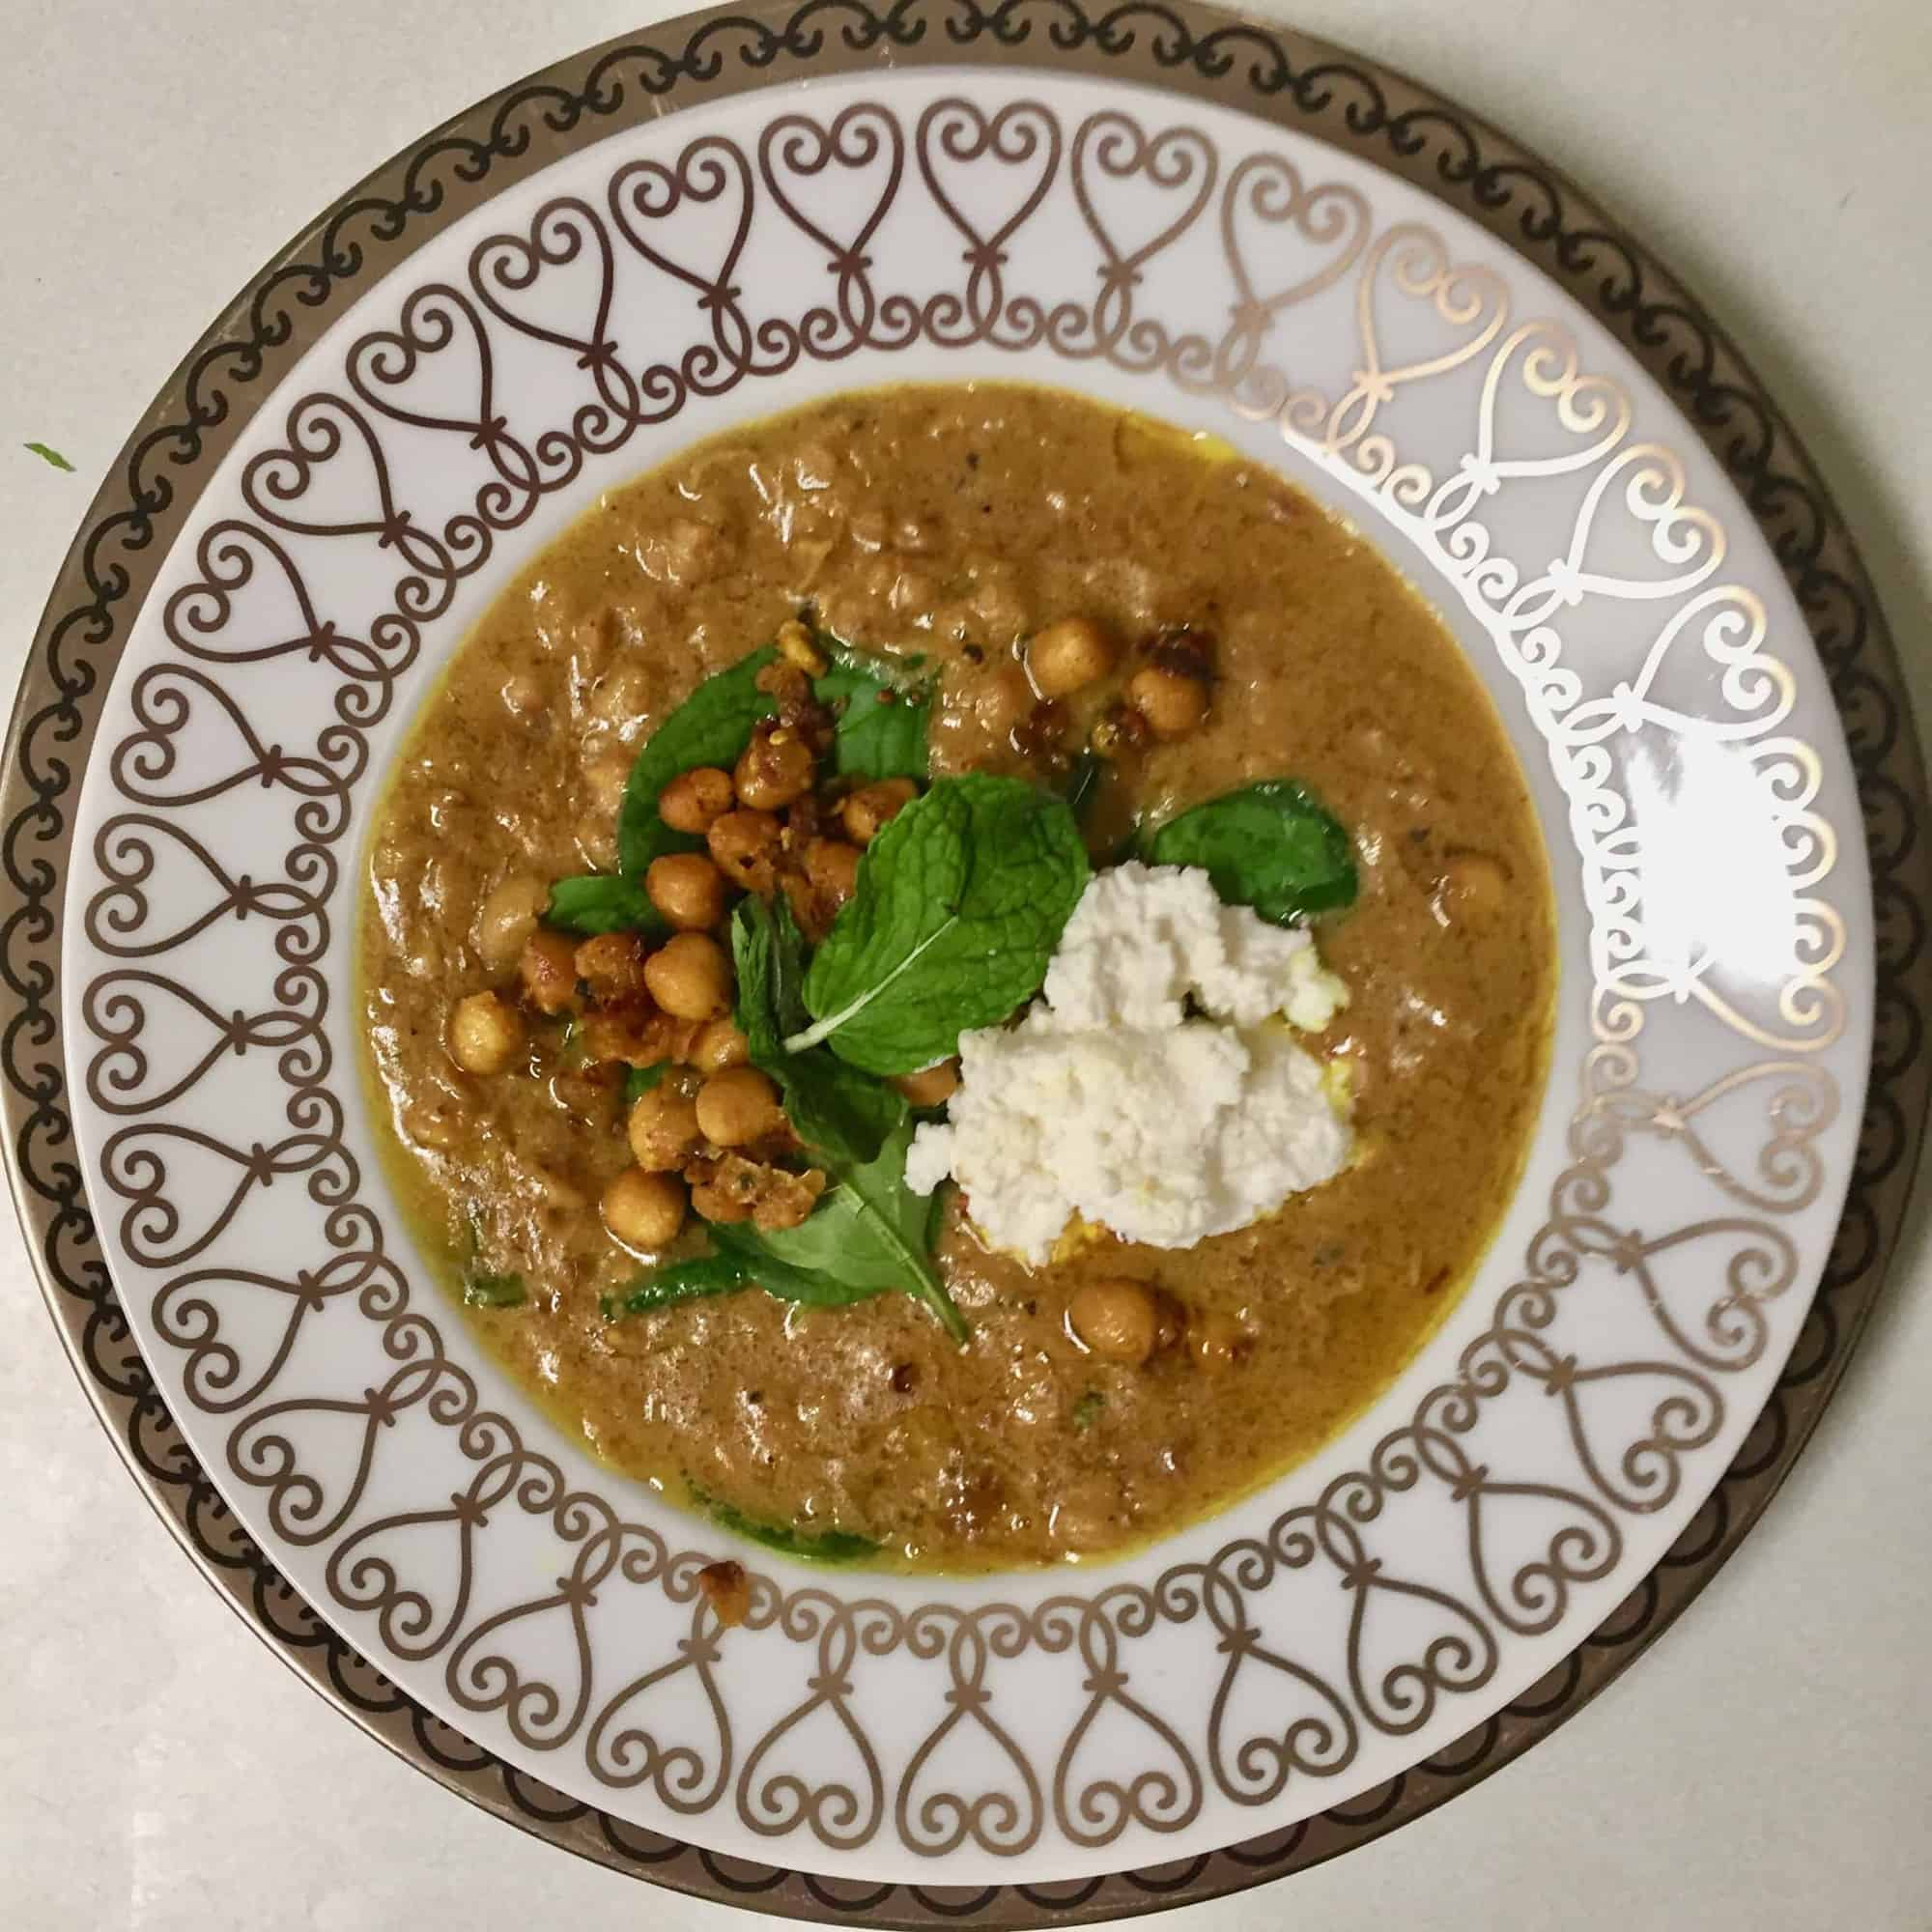 Spiced Chickpea Stew With Coconut And Turmeric From Alison Roman In The New York Times C H E W I N G T H E F A T